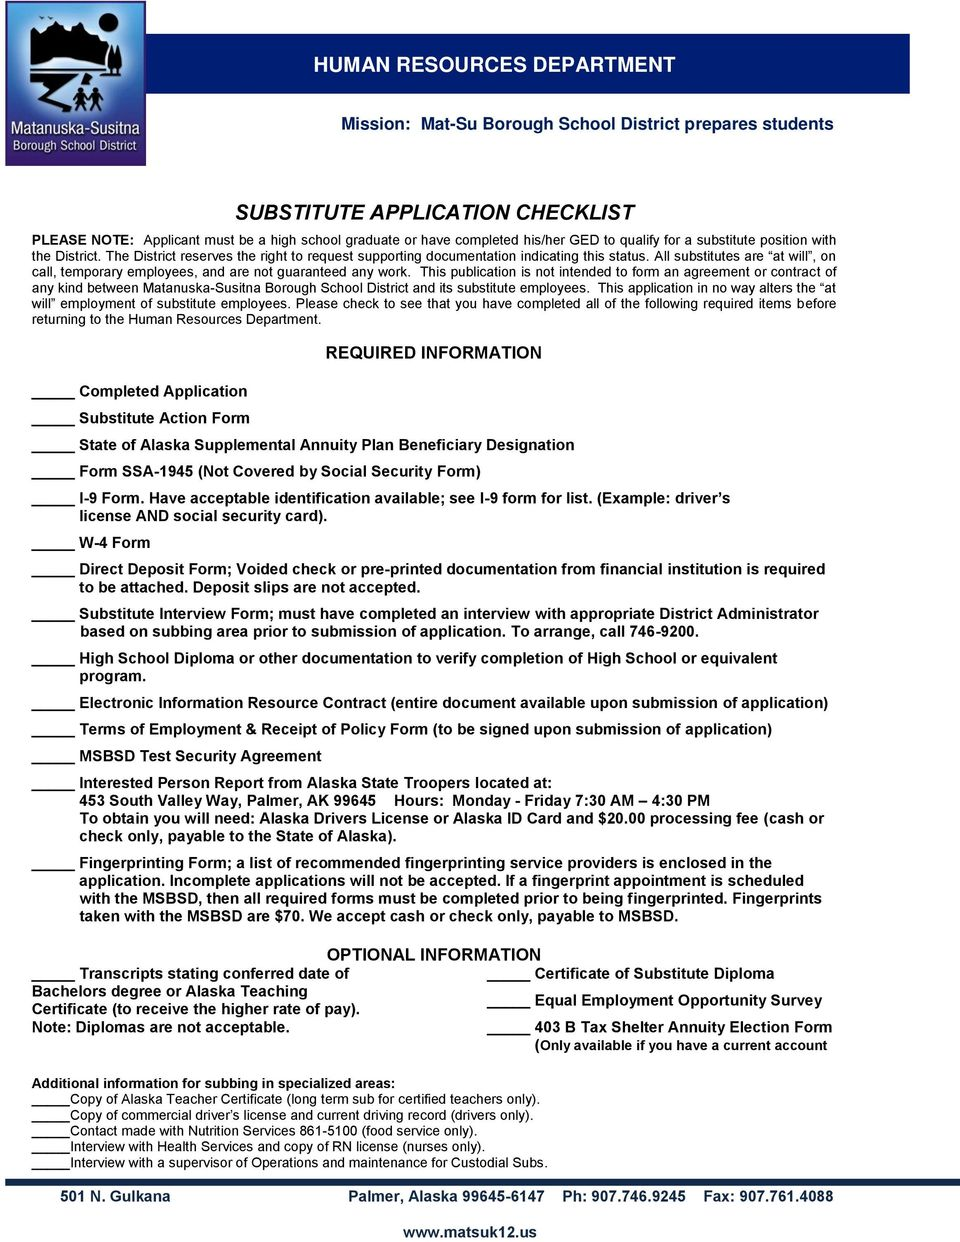 Human Resources Department Substitute Application Checklist Pdf